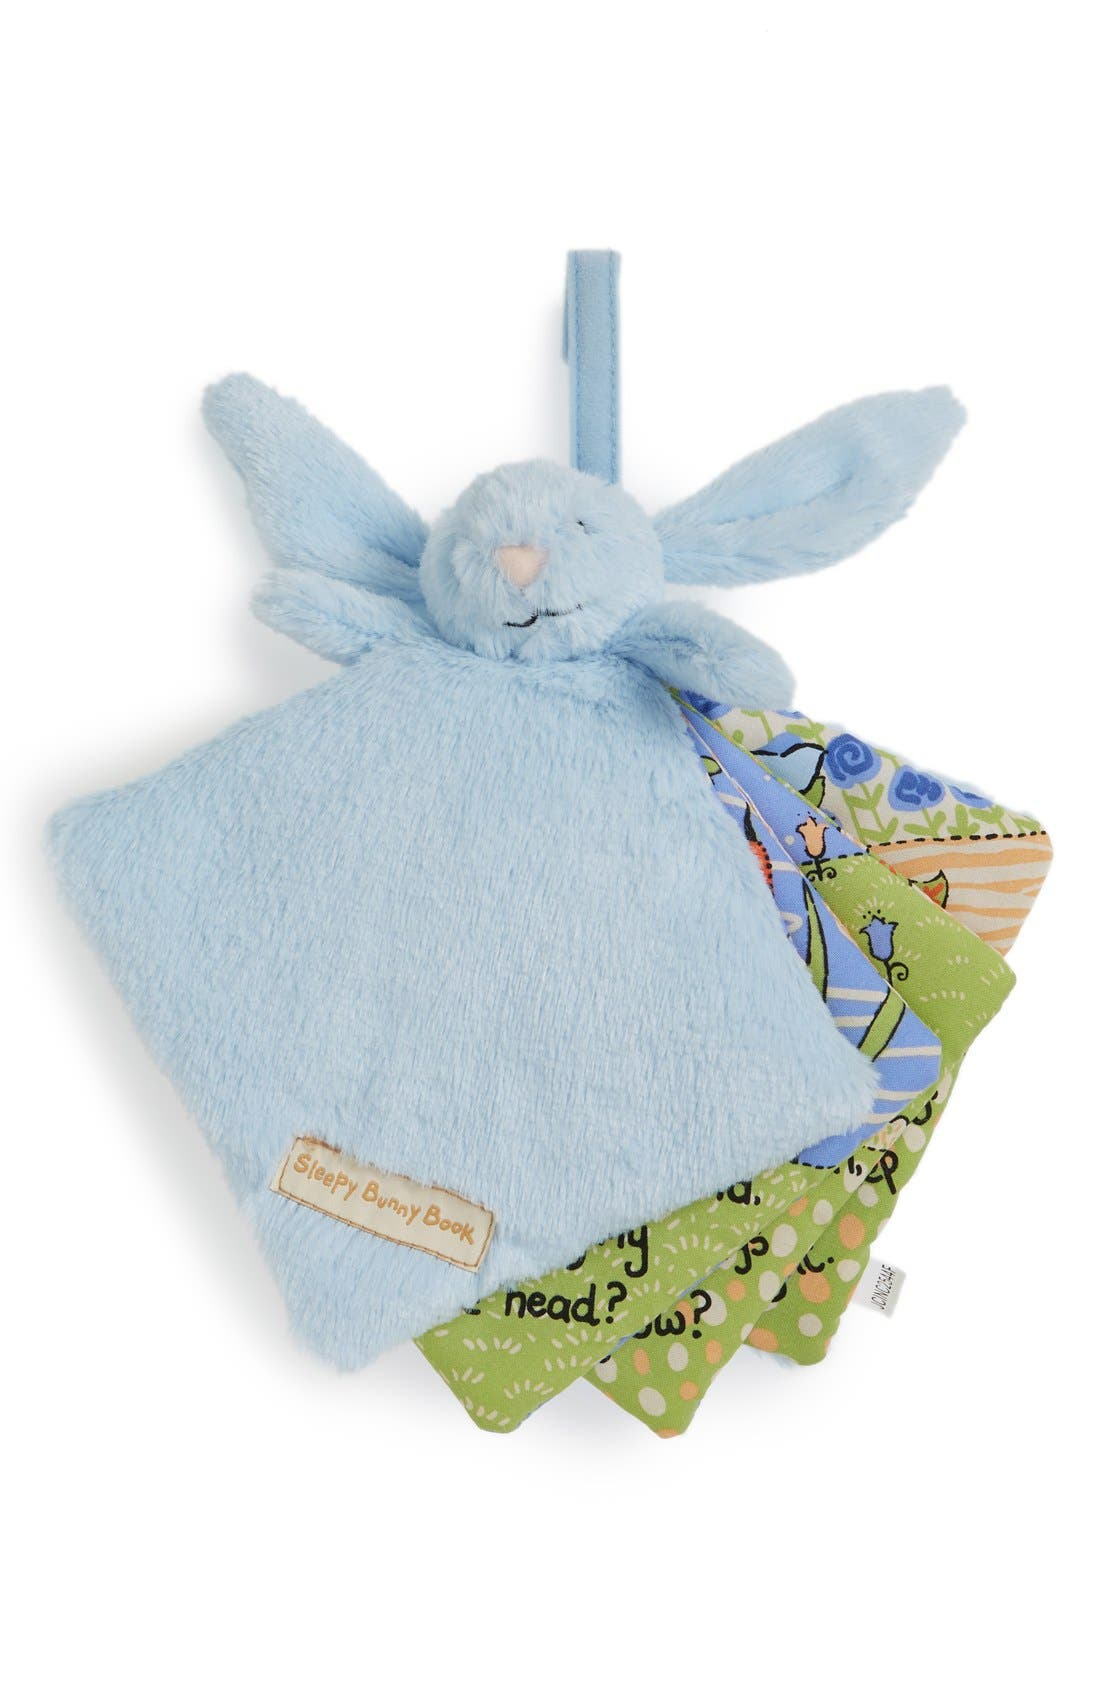 'Sleepy Bunny' Soft Fabric Book,                             Main thumbnail 1, color,                             BLUE